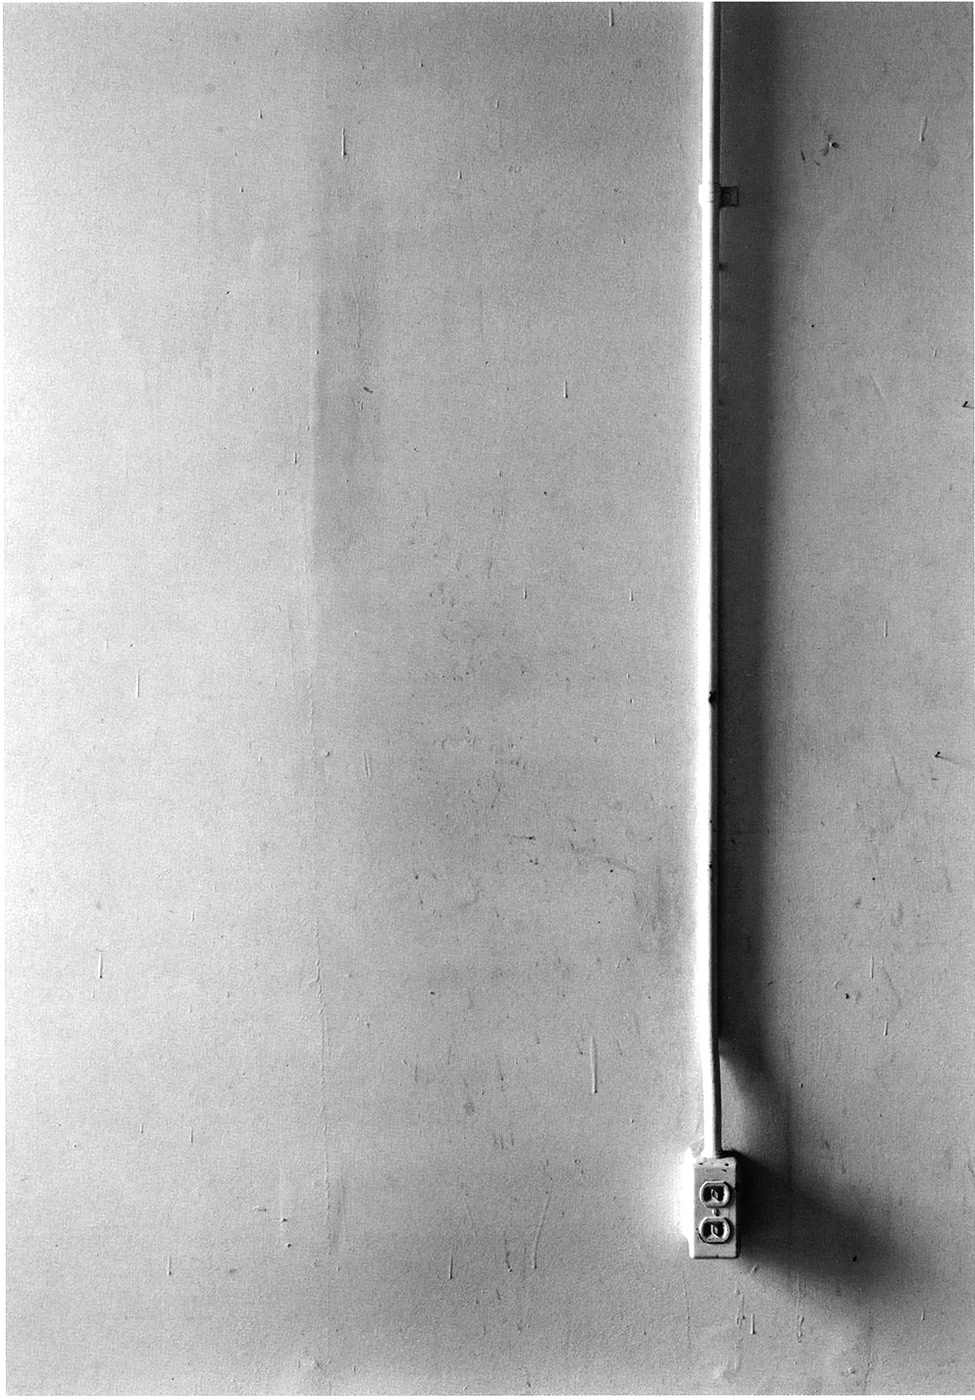 Lynne Cohen - Untitled (Plug Like Flavin), 1970-1979